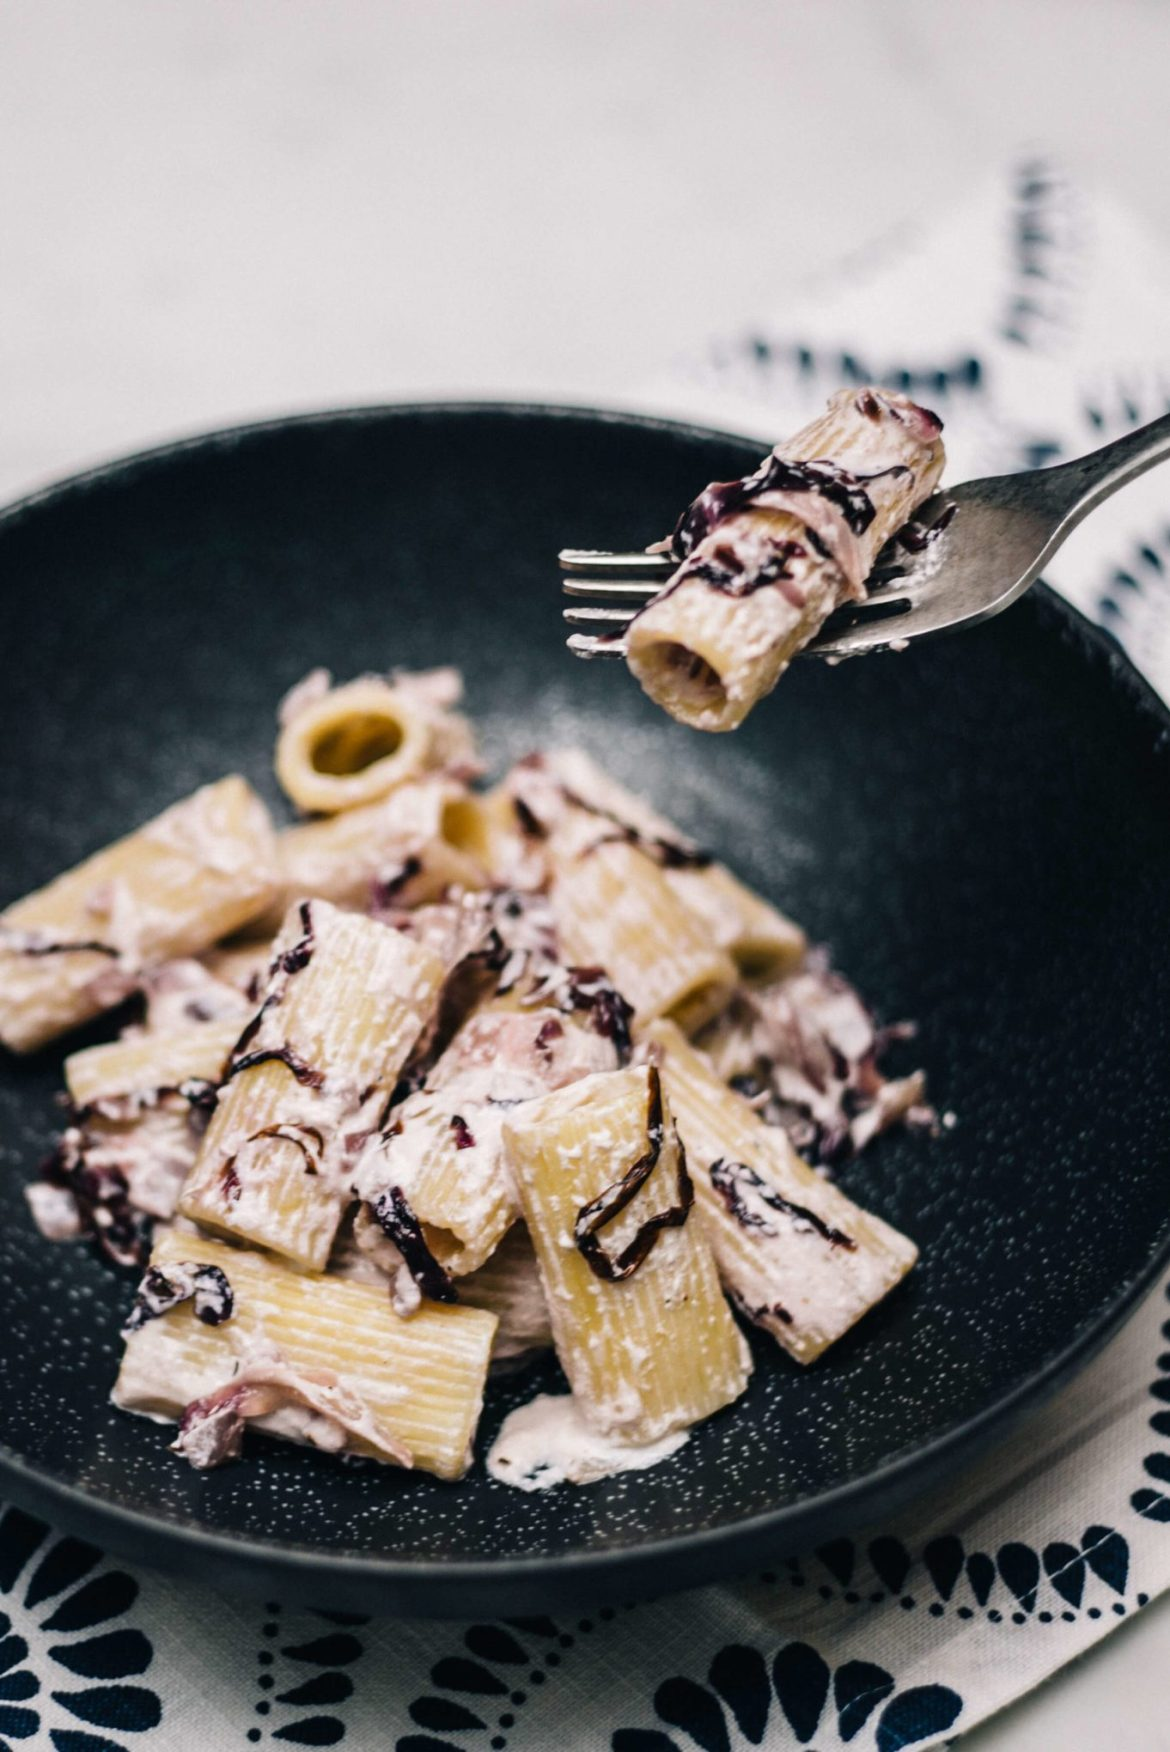 This pasta uses ricotta to make a simple, creamy sauce along with raddicio makes an easy pasta recipe from The Taste Edit